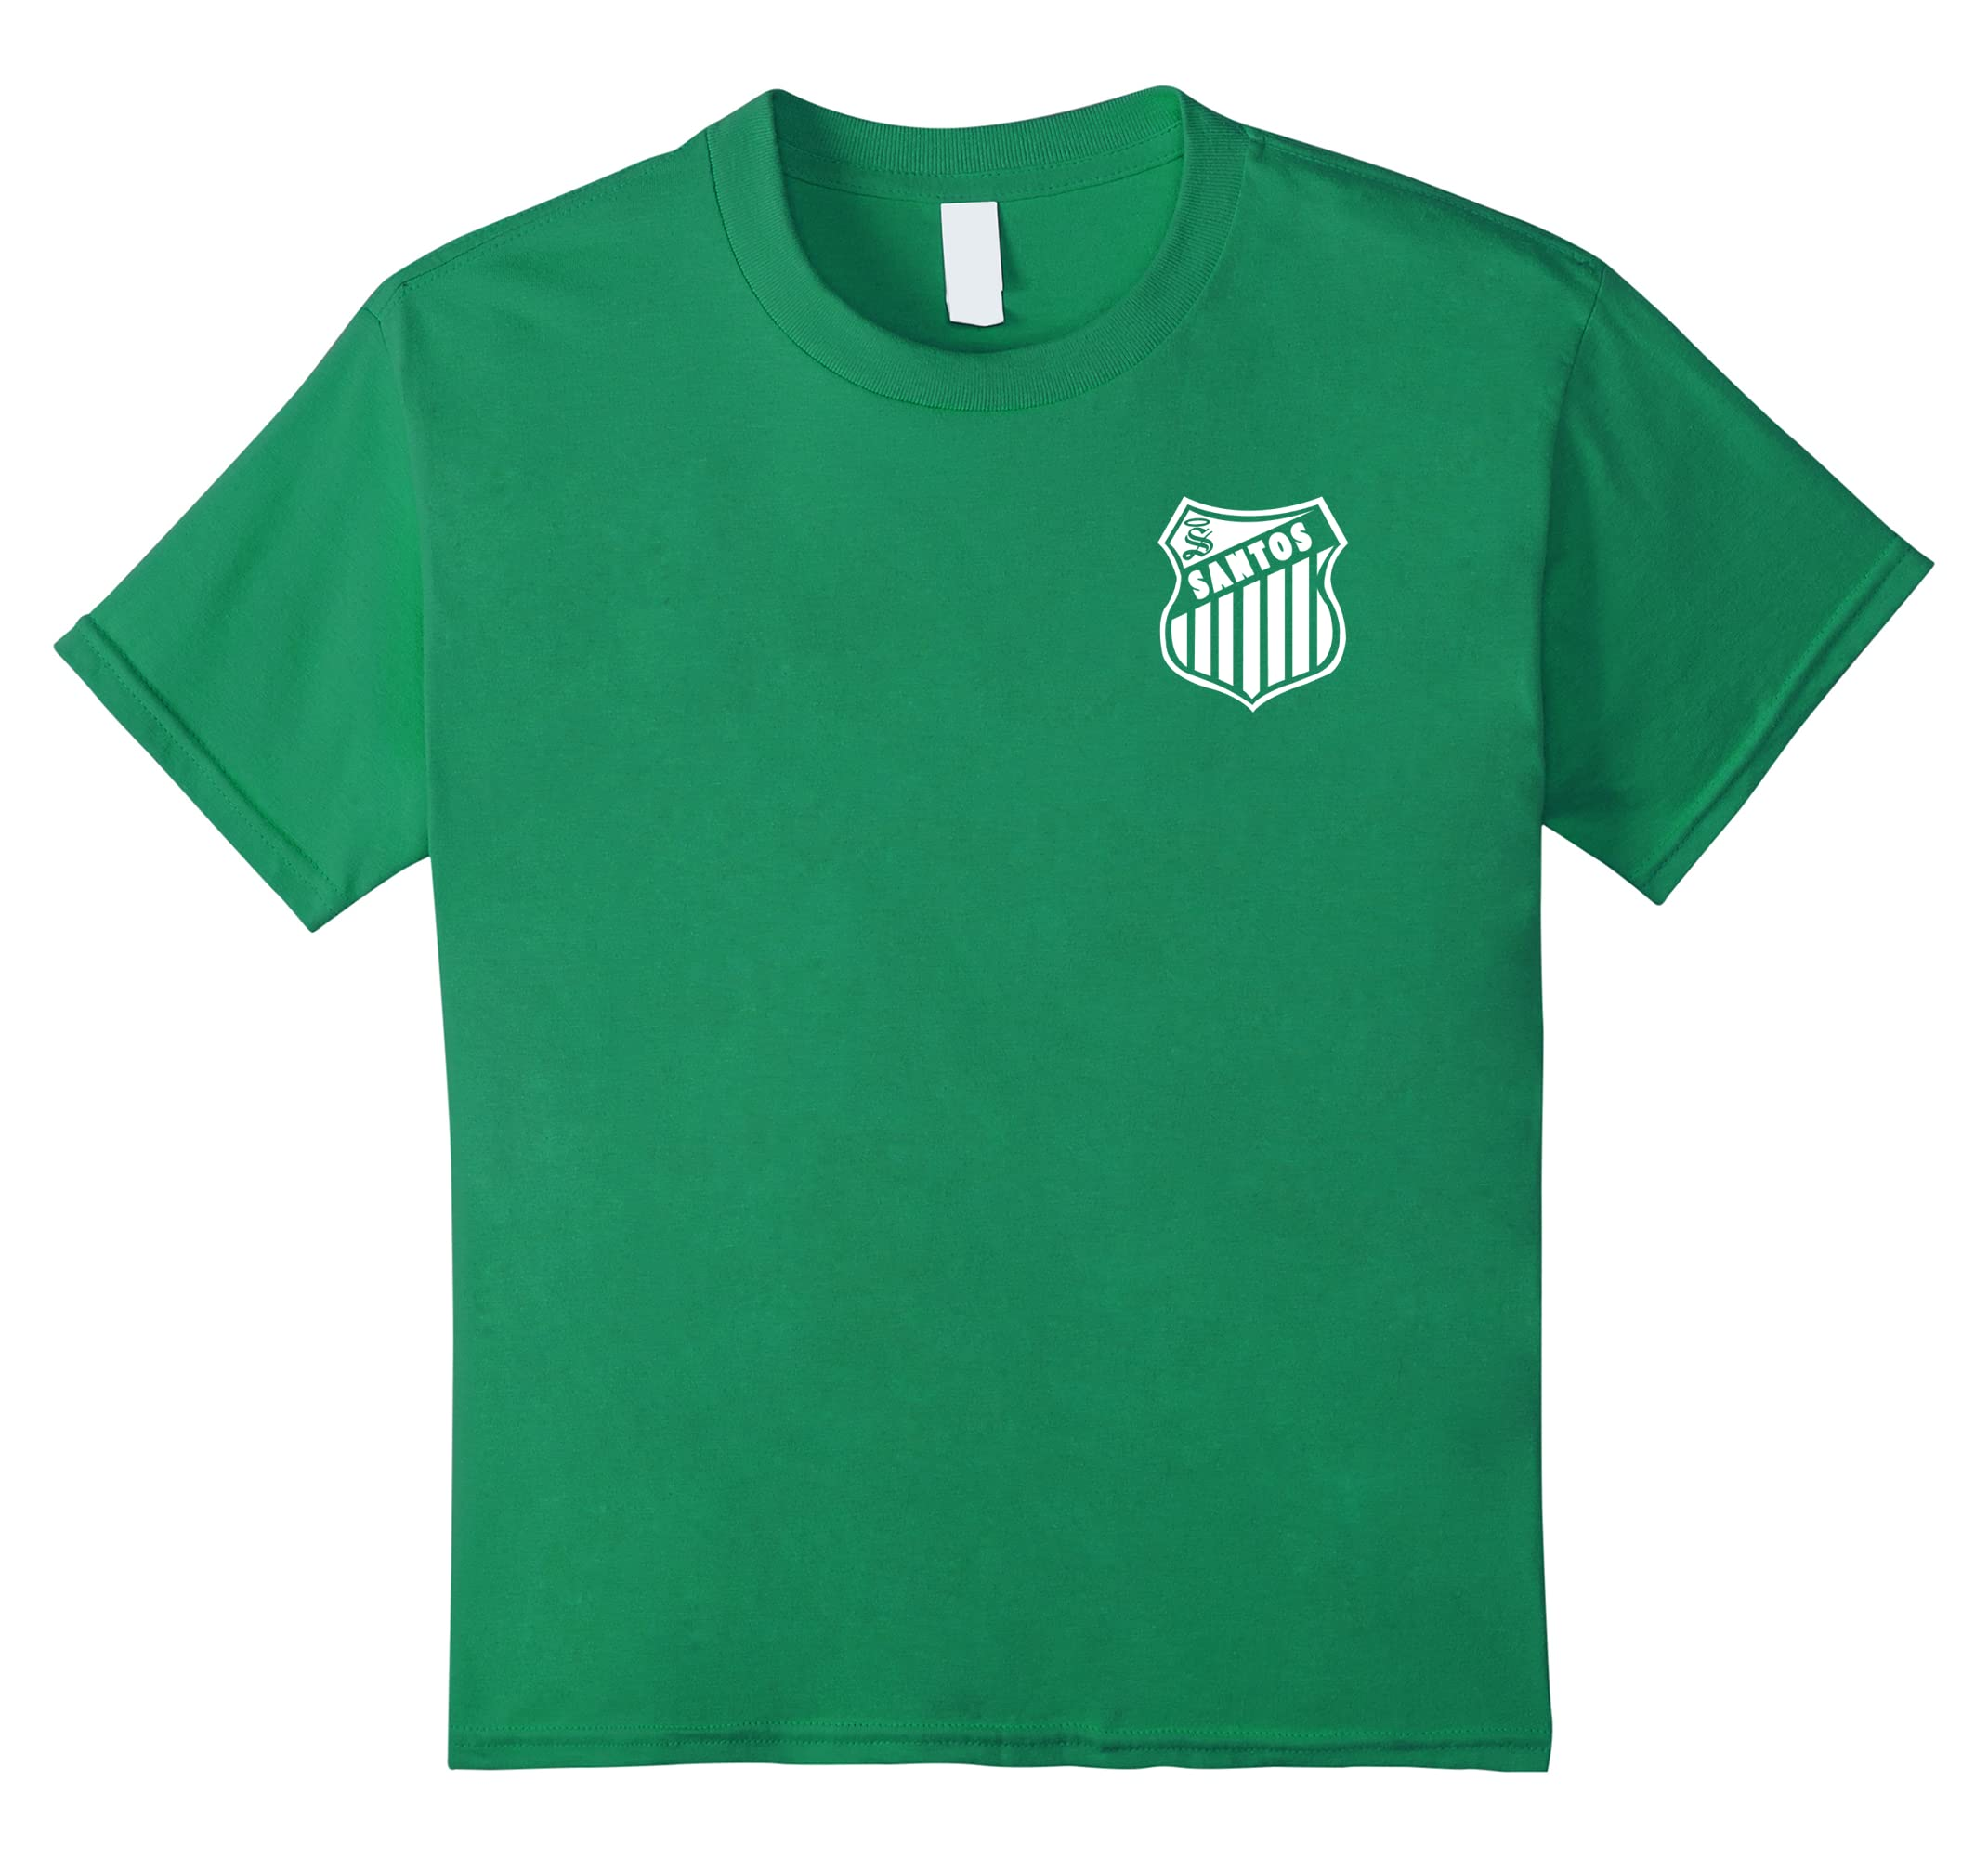 Amazon.com: Santos Laguna RETRO - Jersey Playera Camisa T Shirt Mexico: Clothing